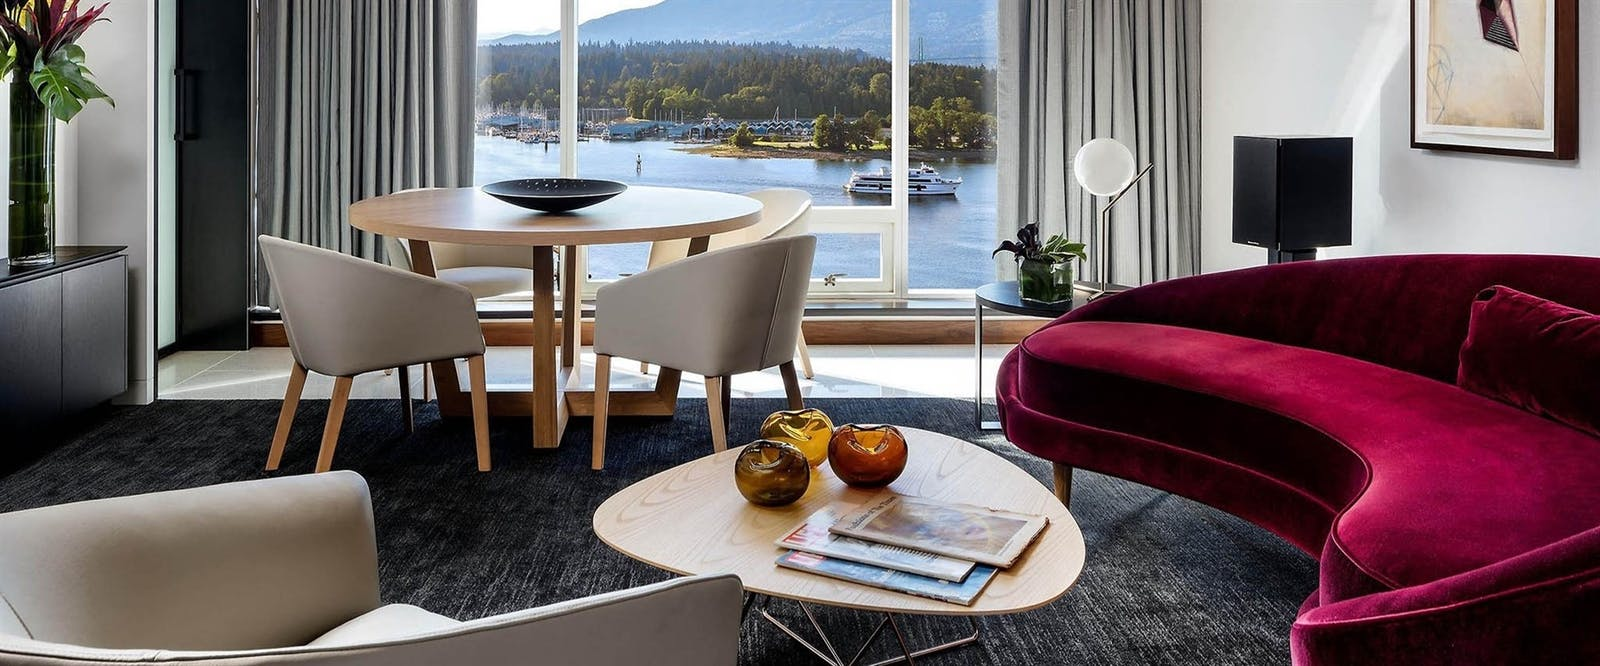 Owners Suite at Fairmont Pacific Rim, Vancouver